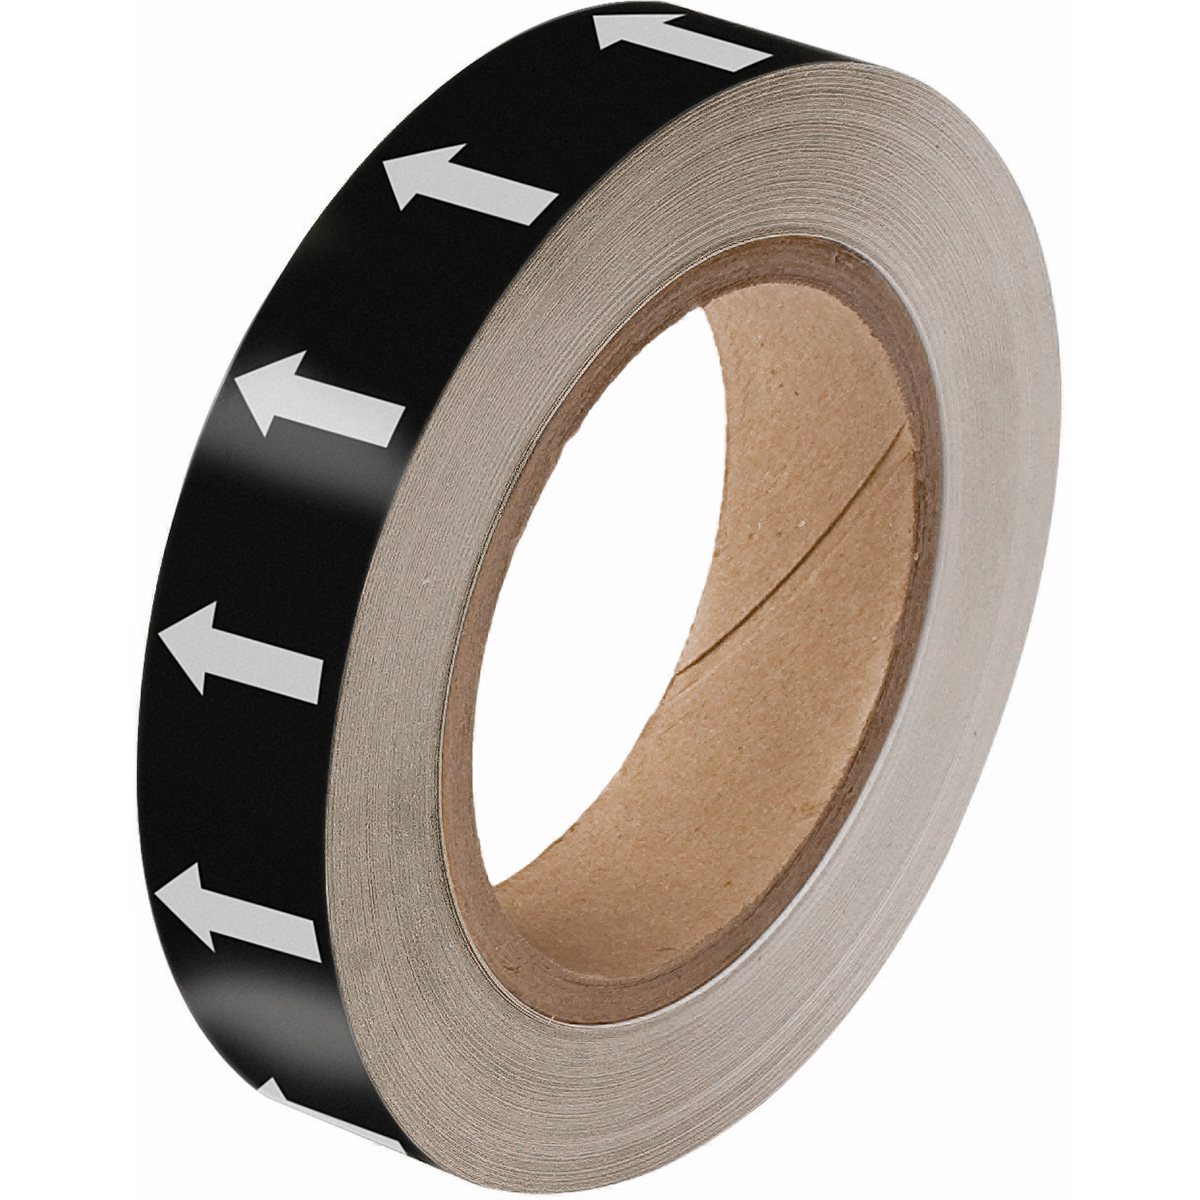 Black on White Directional Flow Arrow Tape